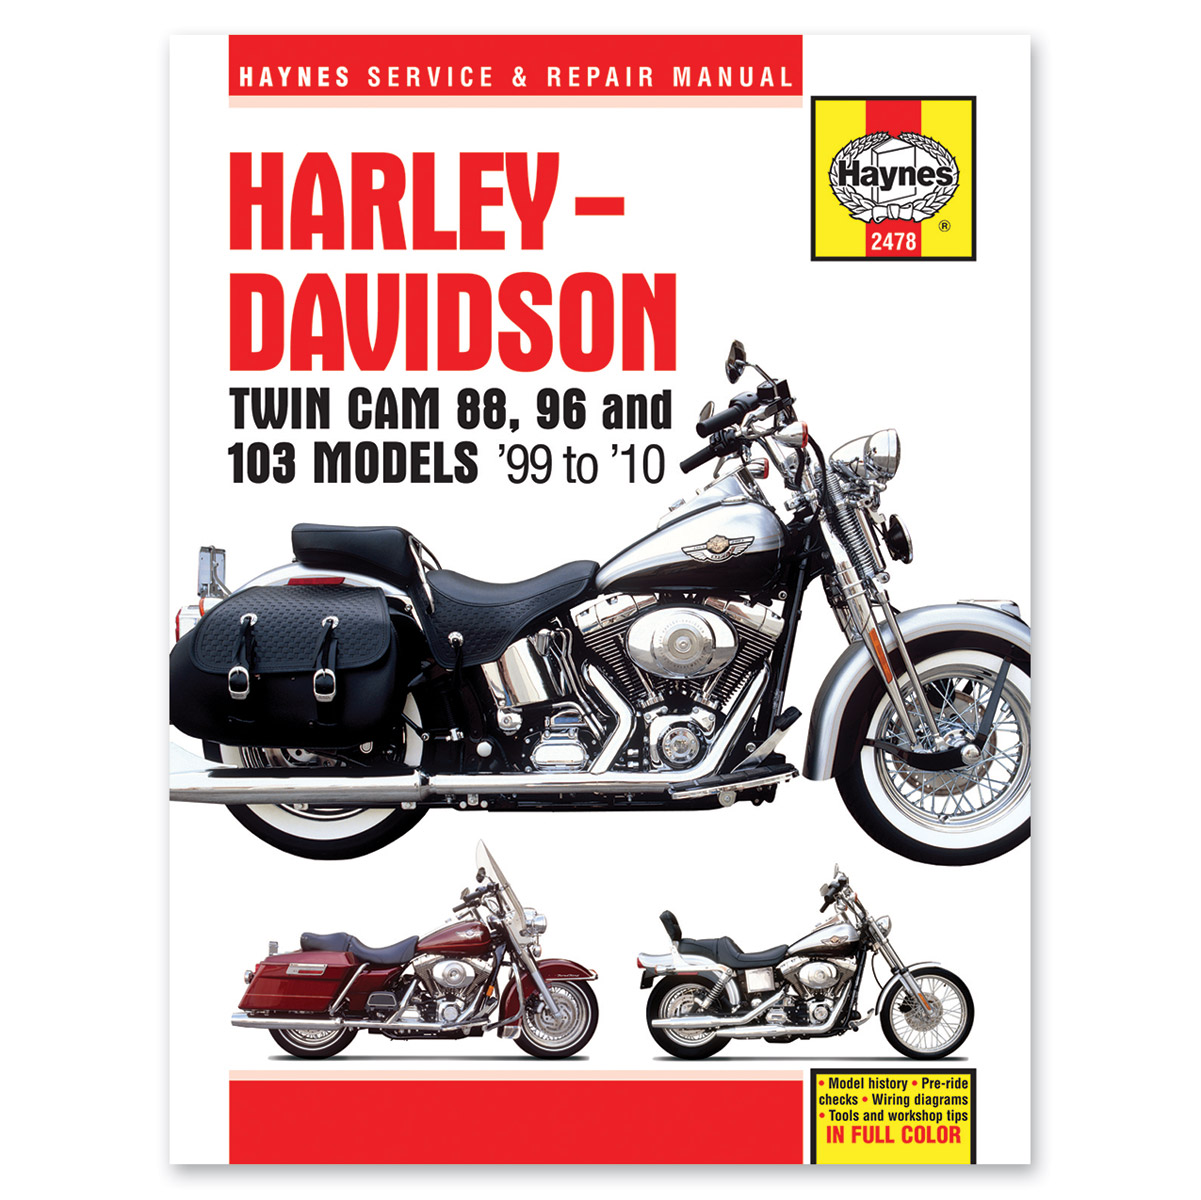 haynes twin cam manual 160 019 j p cycles rh jpcycles com 2000 Victory V92C 2000 Victory V.92